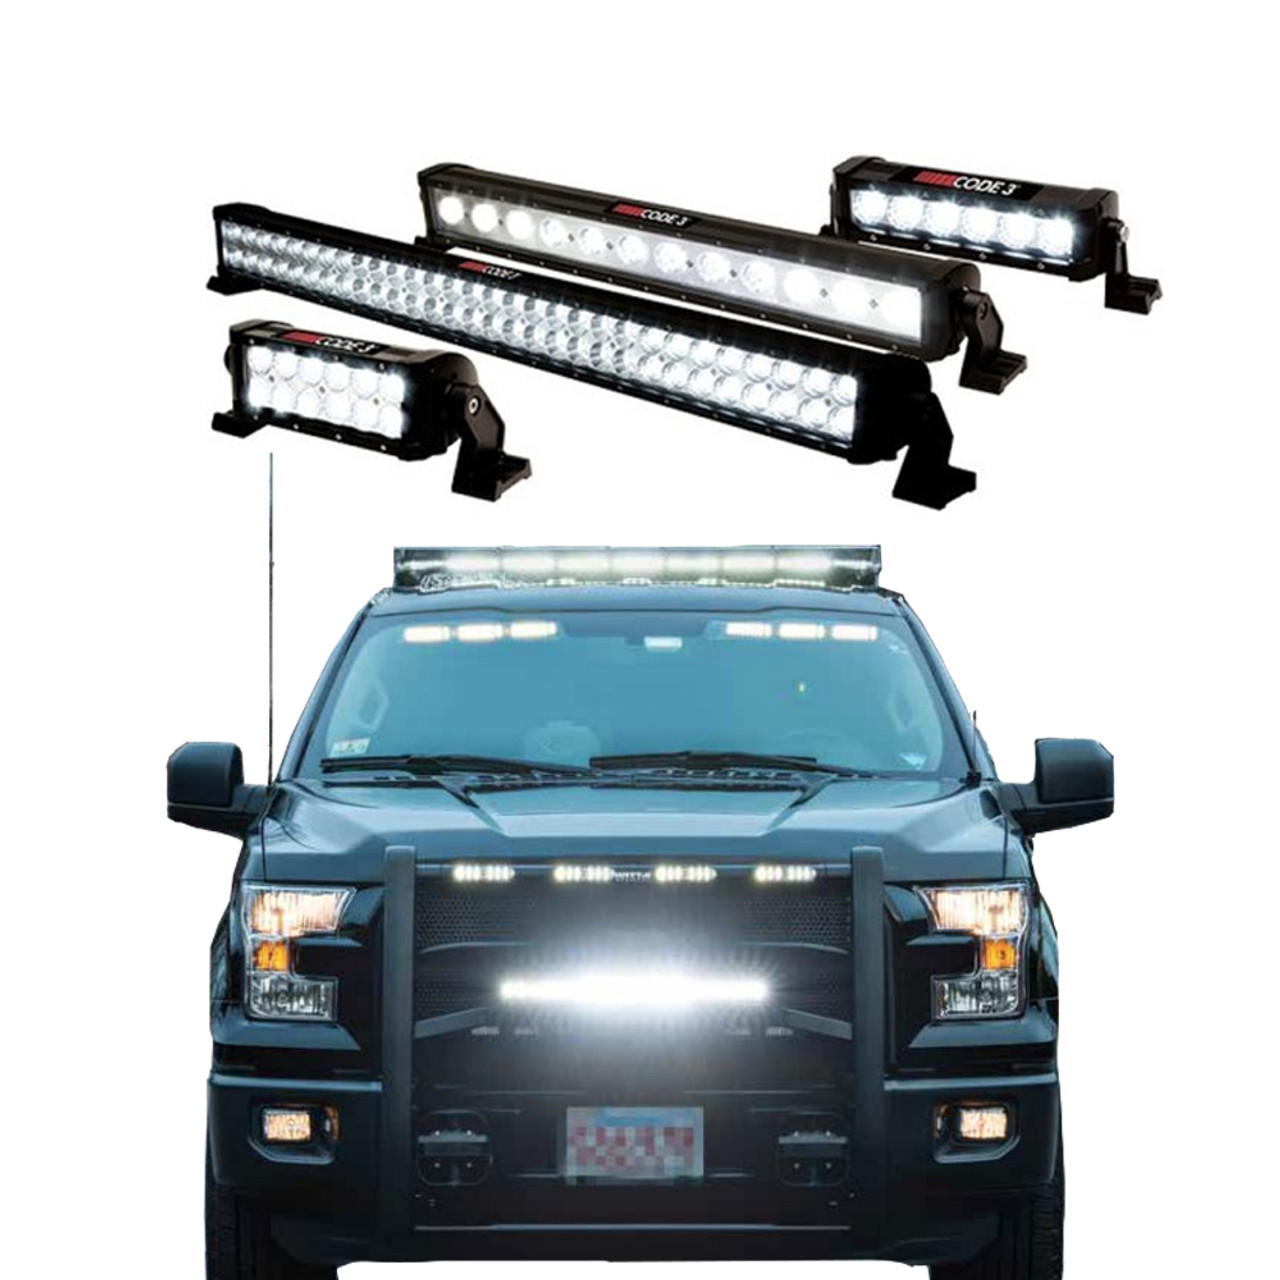 Code-3 Utility Bars, Off Road Light Bar, Spot or Flood Beams